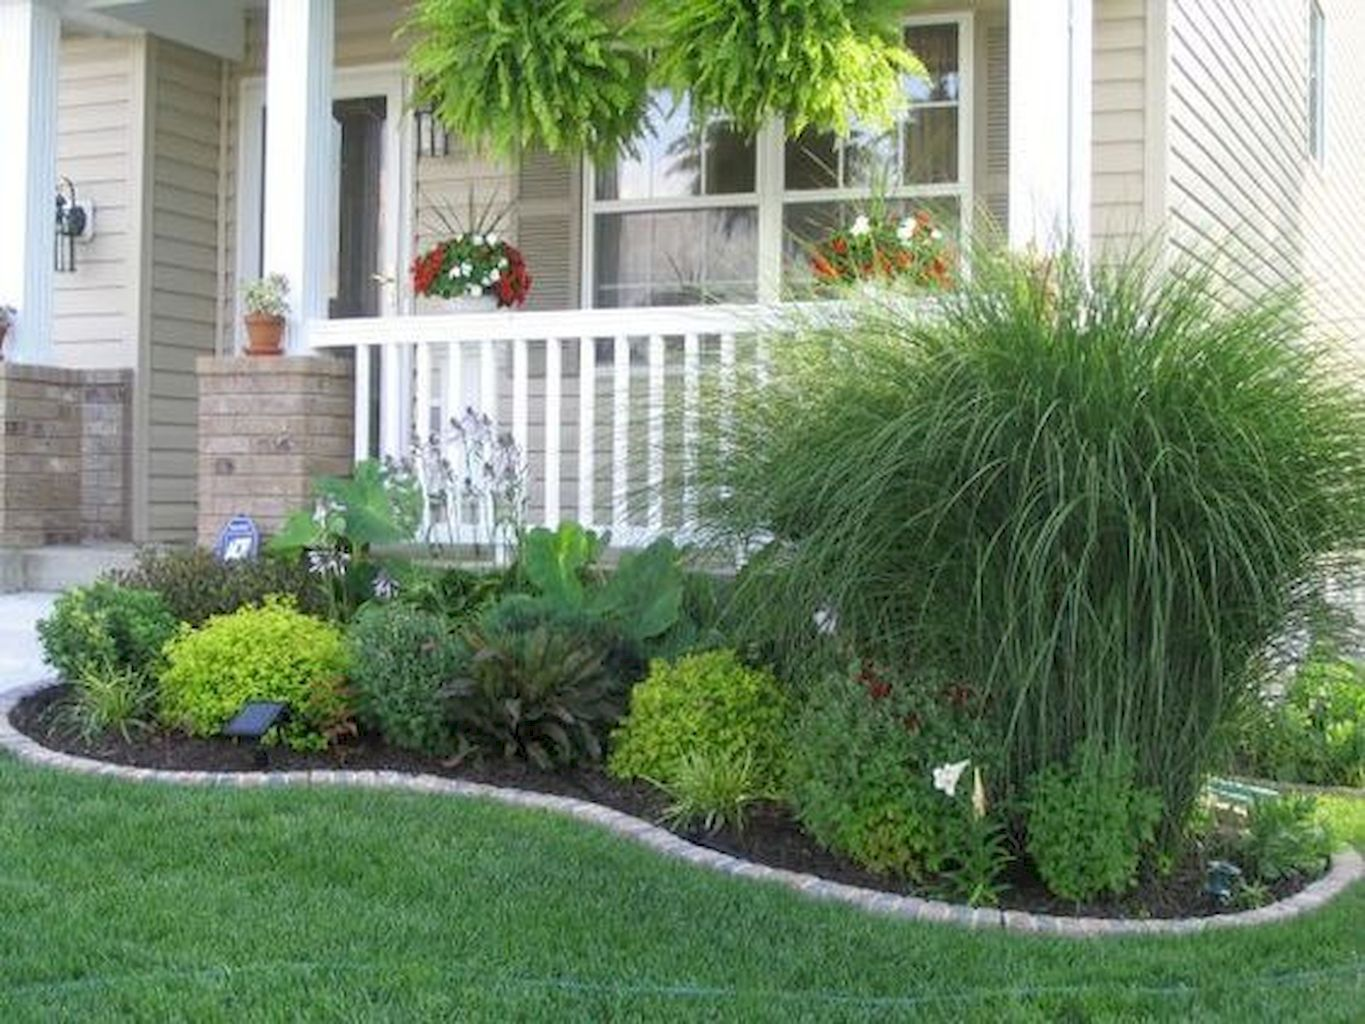 Home Garden Design Ideas: Small Front Yard Landscaping Ideas On A Budget (61